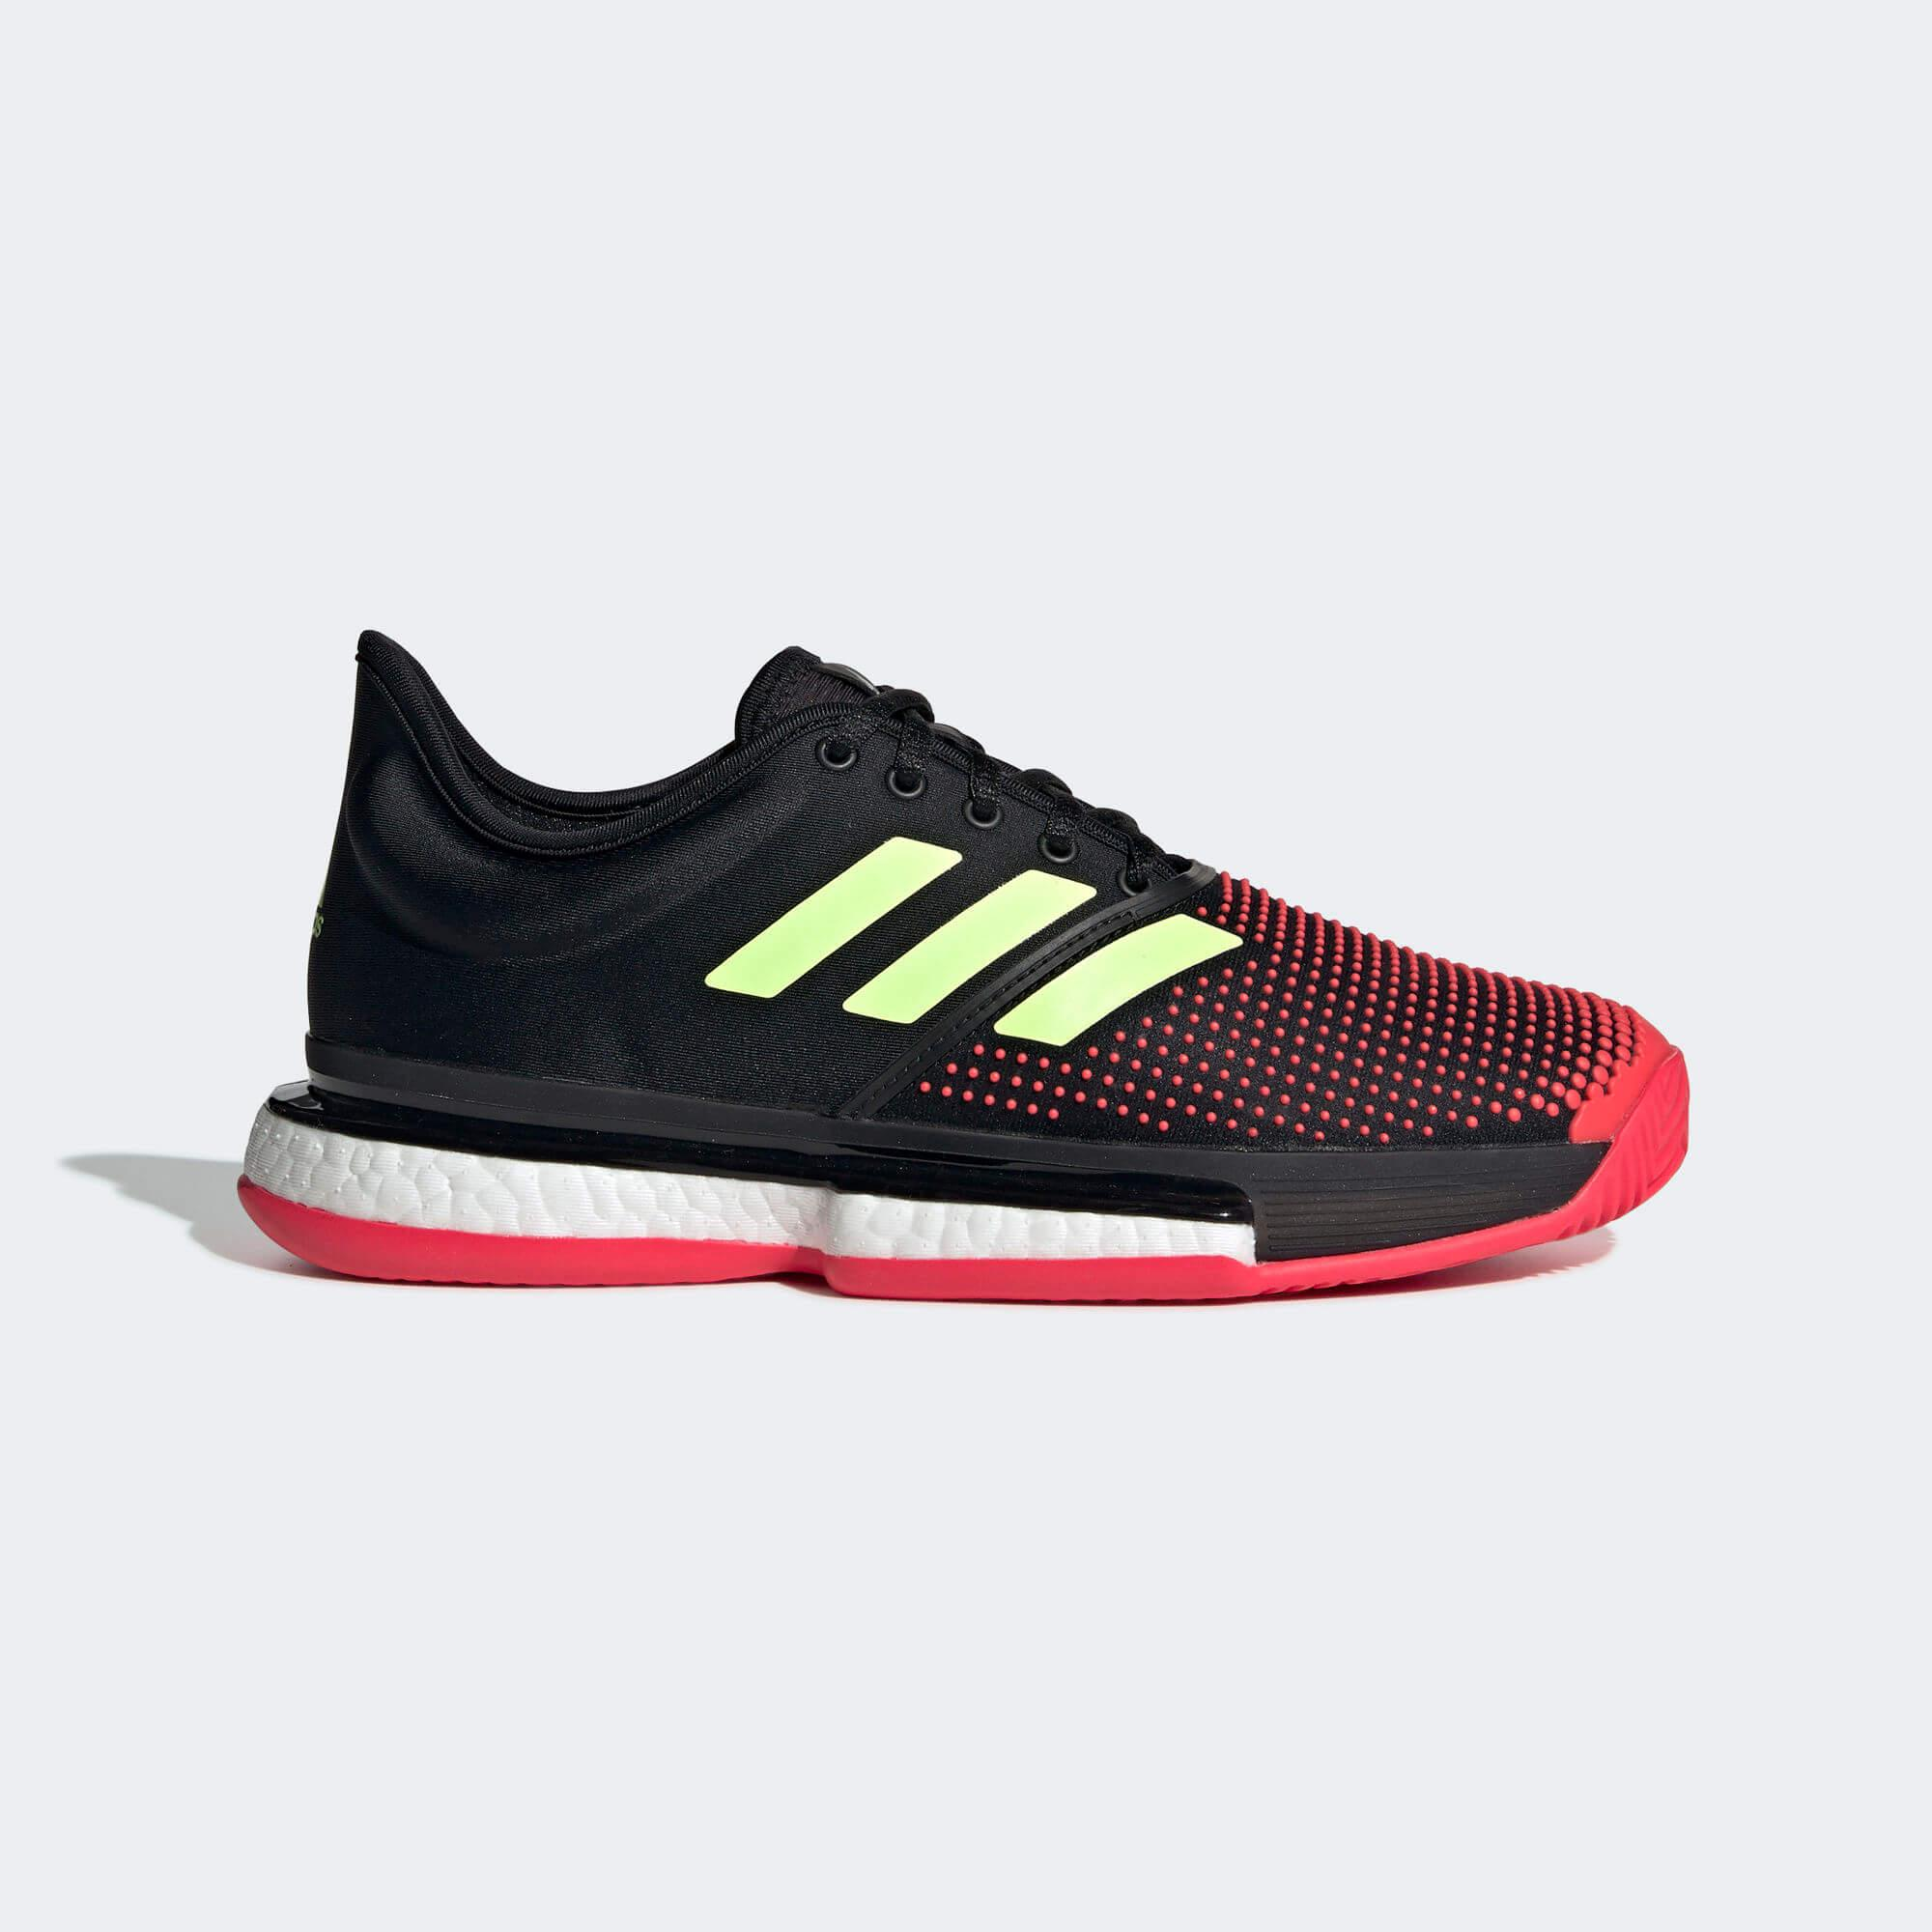 buy popular f64d7 e120f ... clearance adidas womens solecourt boost tennis shoes black shock red  569a0 a4833